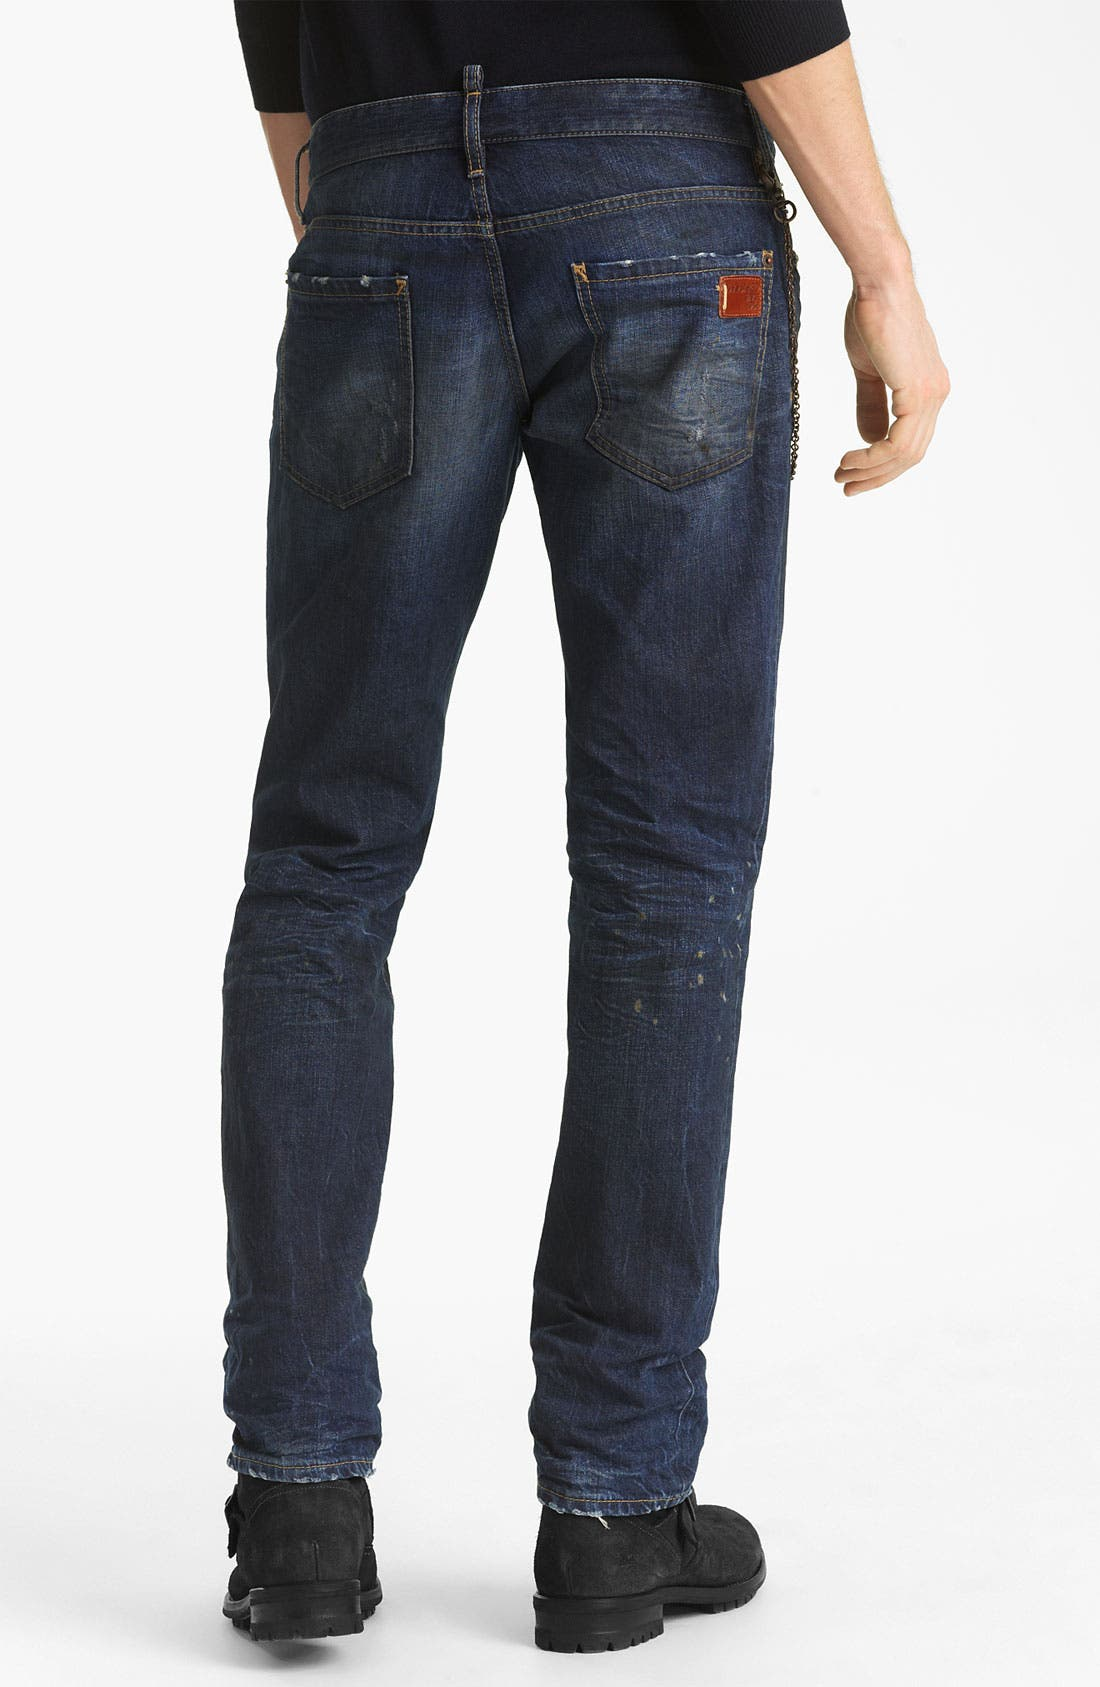 Alternate Image 1 Selected - Dsquared2 Slim Fit Jeans (Grease Monkey)